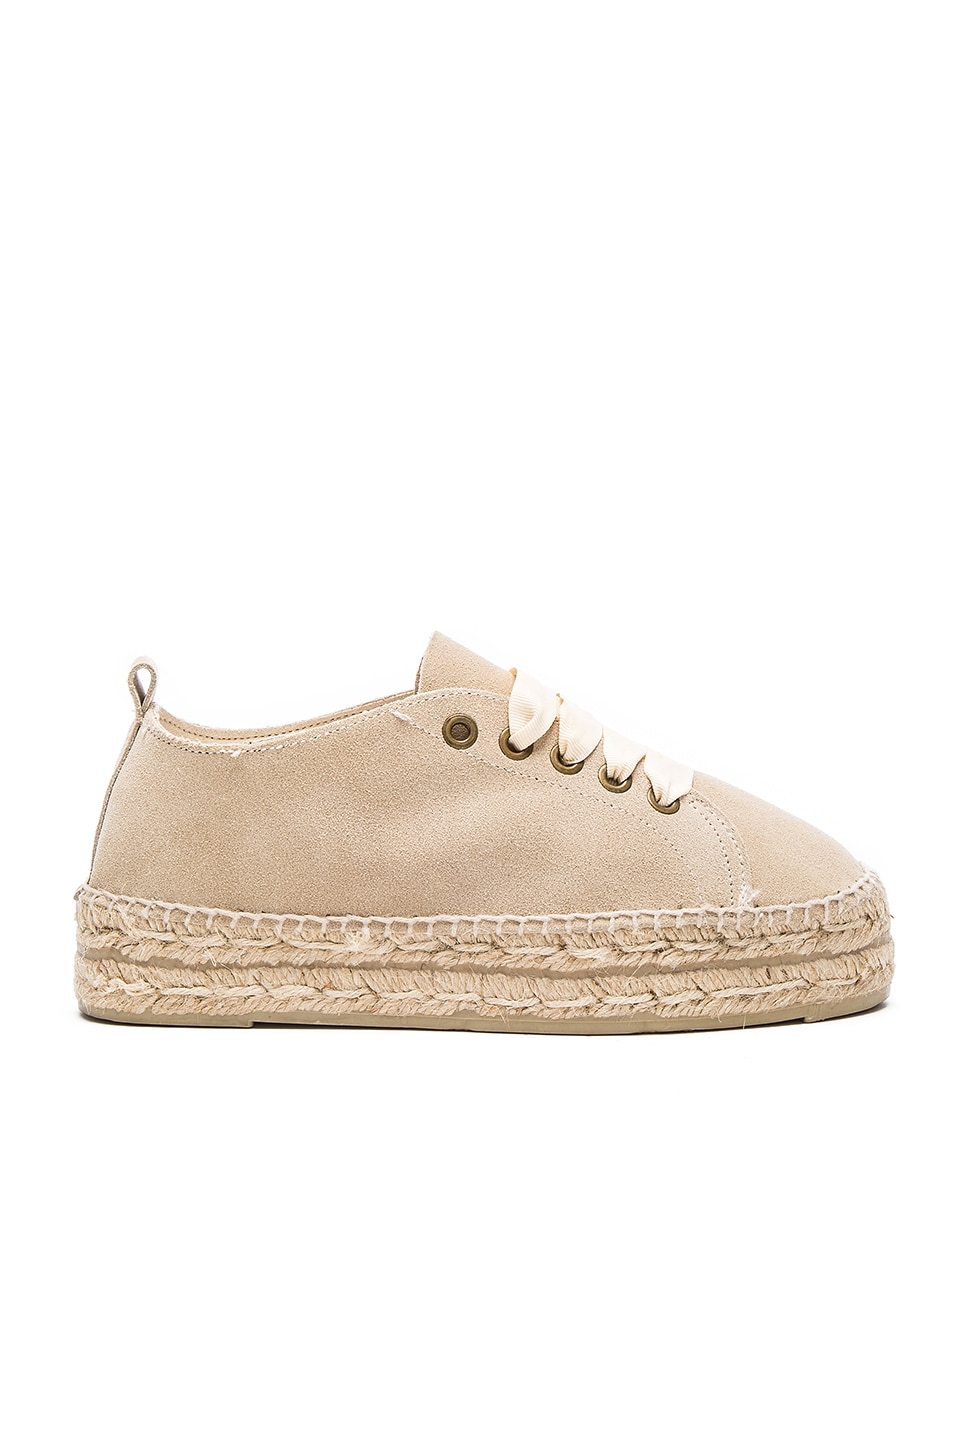 bfd61d0ddf9 MANEBI Hamptons Double Sole Lace Up Espadrille in Champagne Beige ...